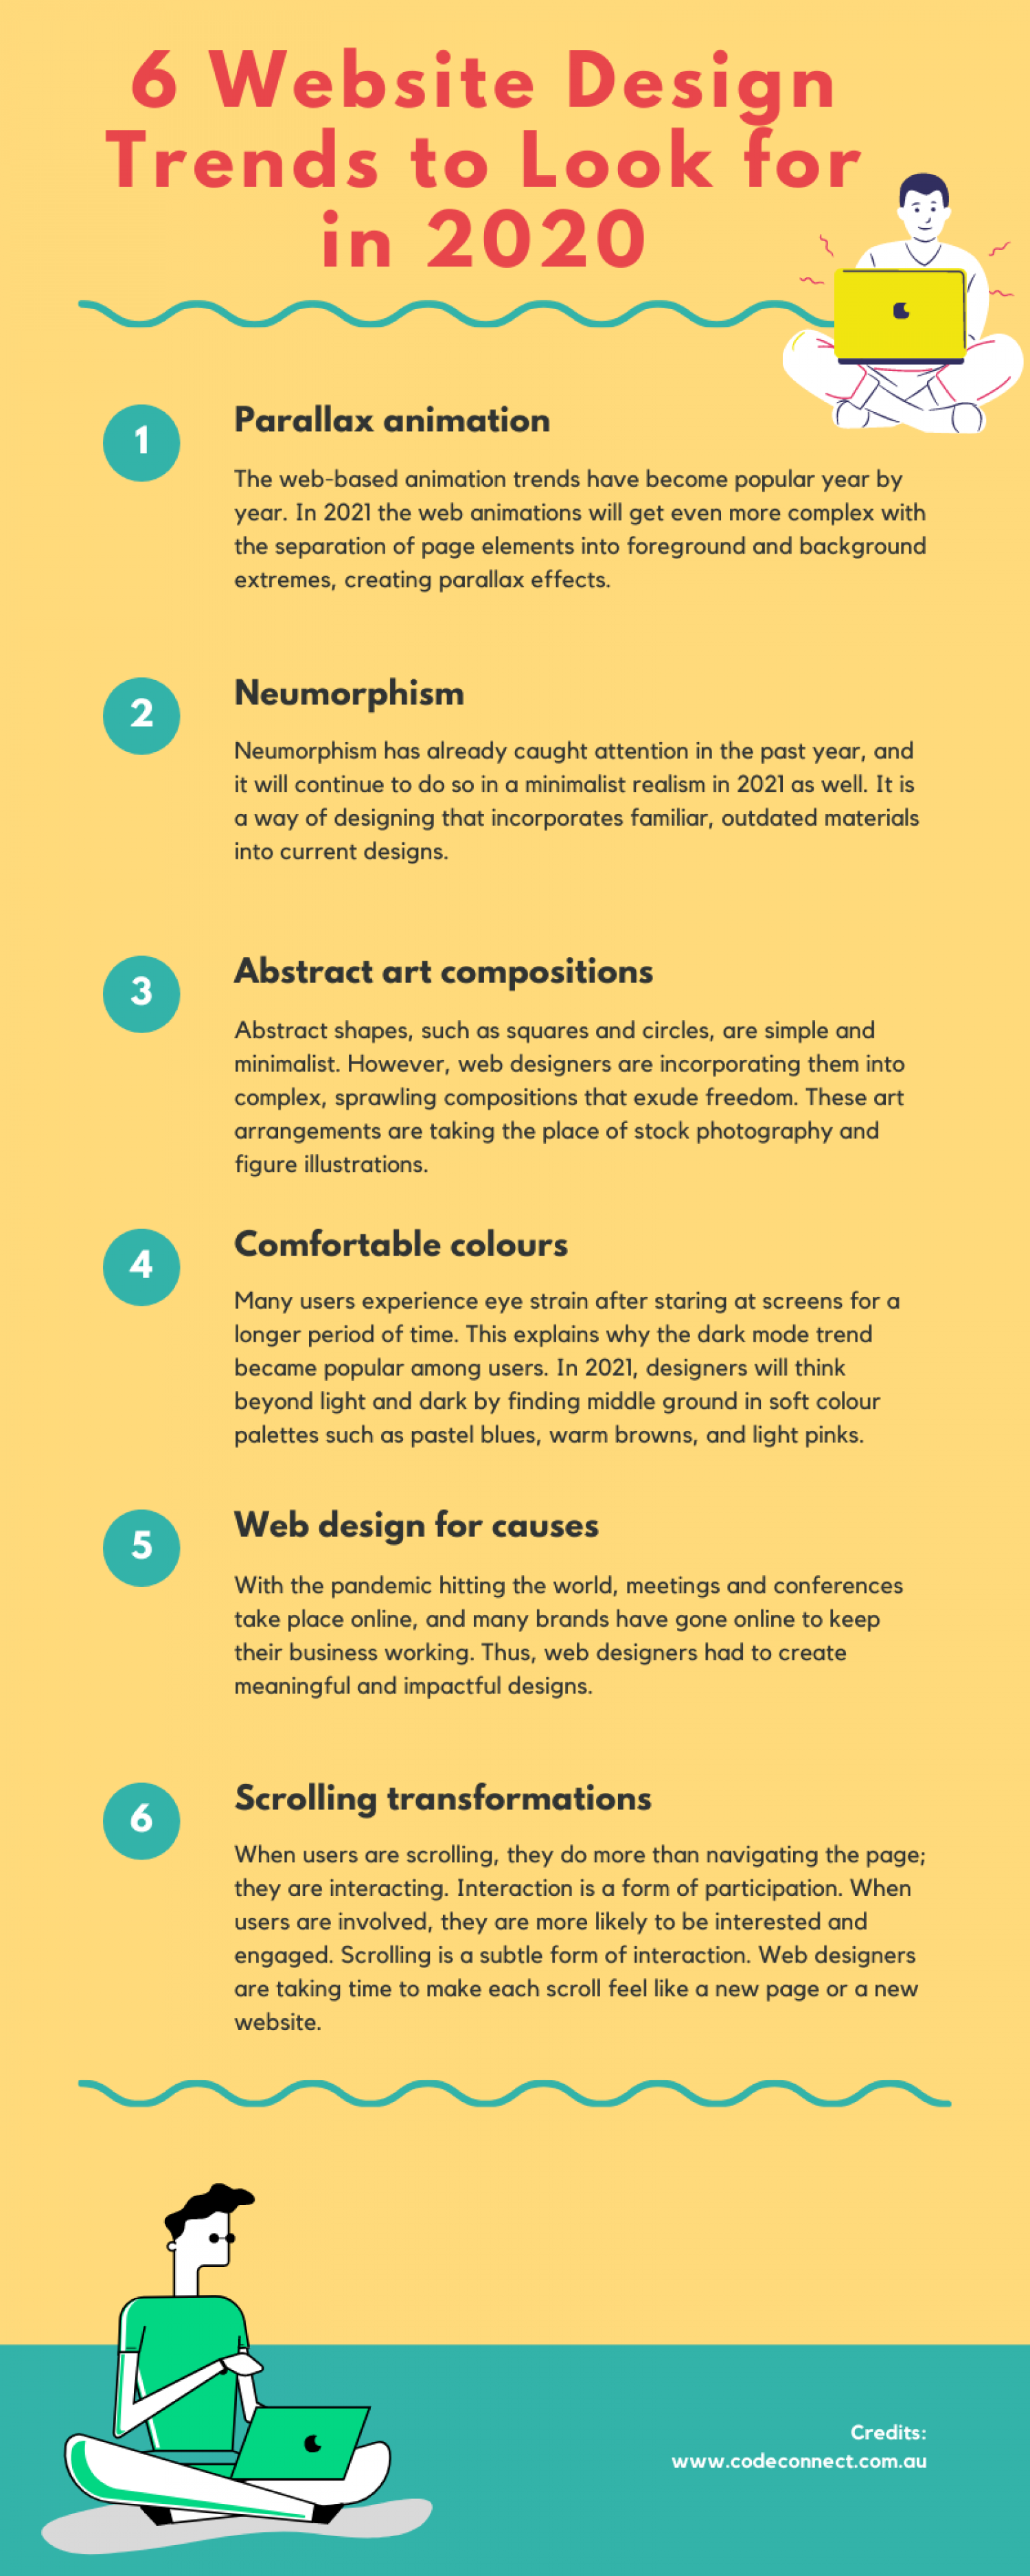 6 Website Design Trends to Look for in 2020 Infographic